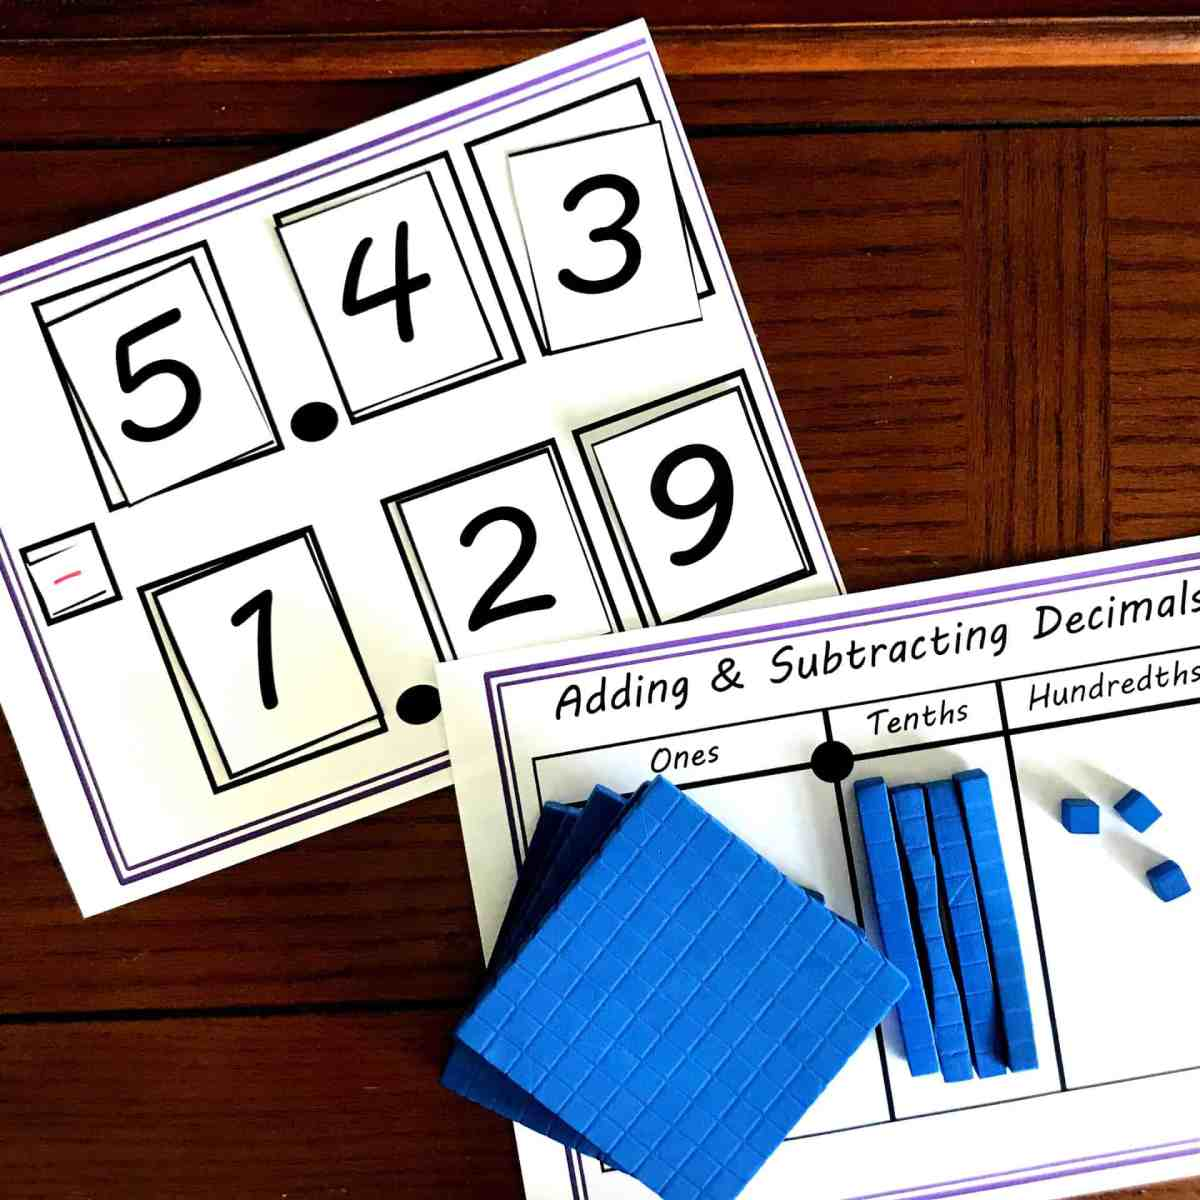 Practice Addition and Subtraction Of Decimals With This Hands-On Activity